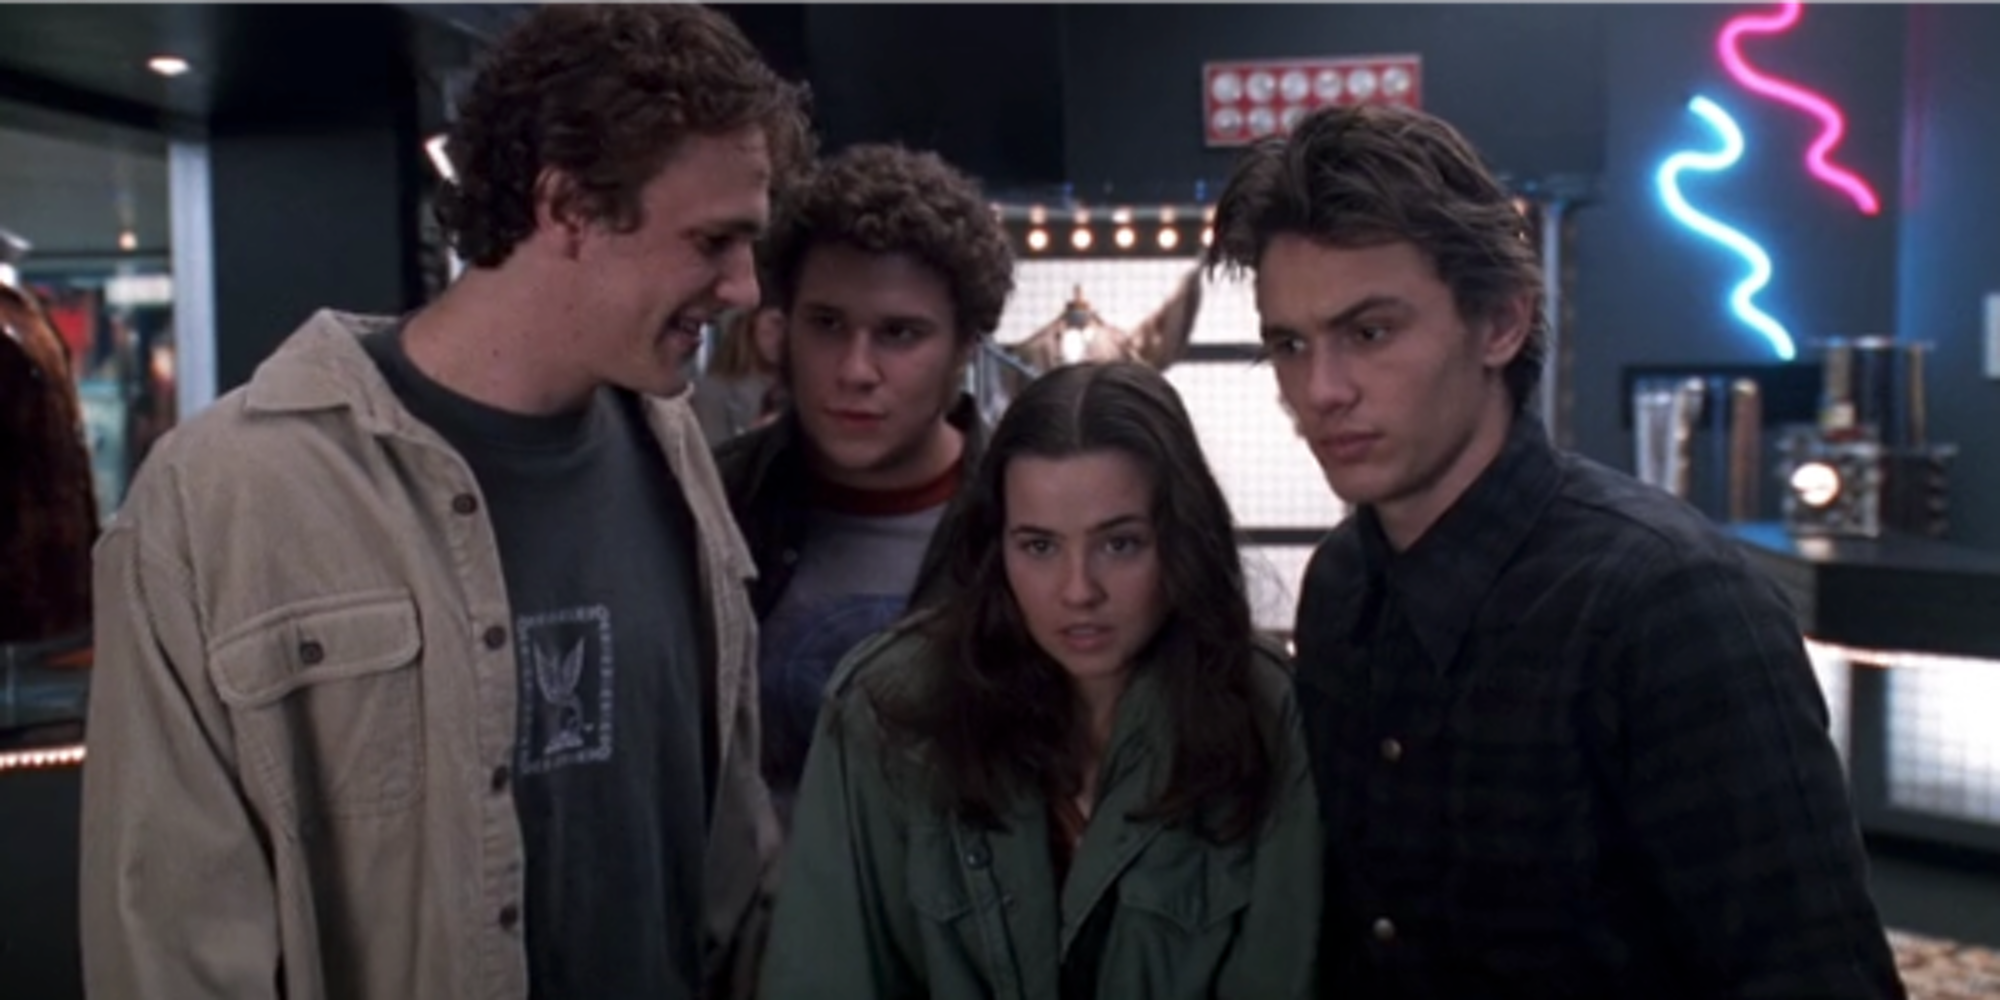 A still from the TV show Freaks and Geeks